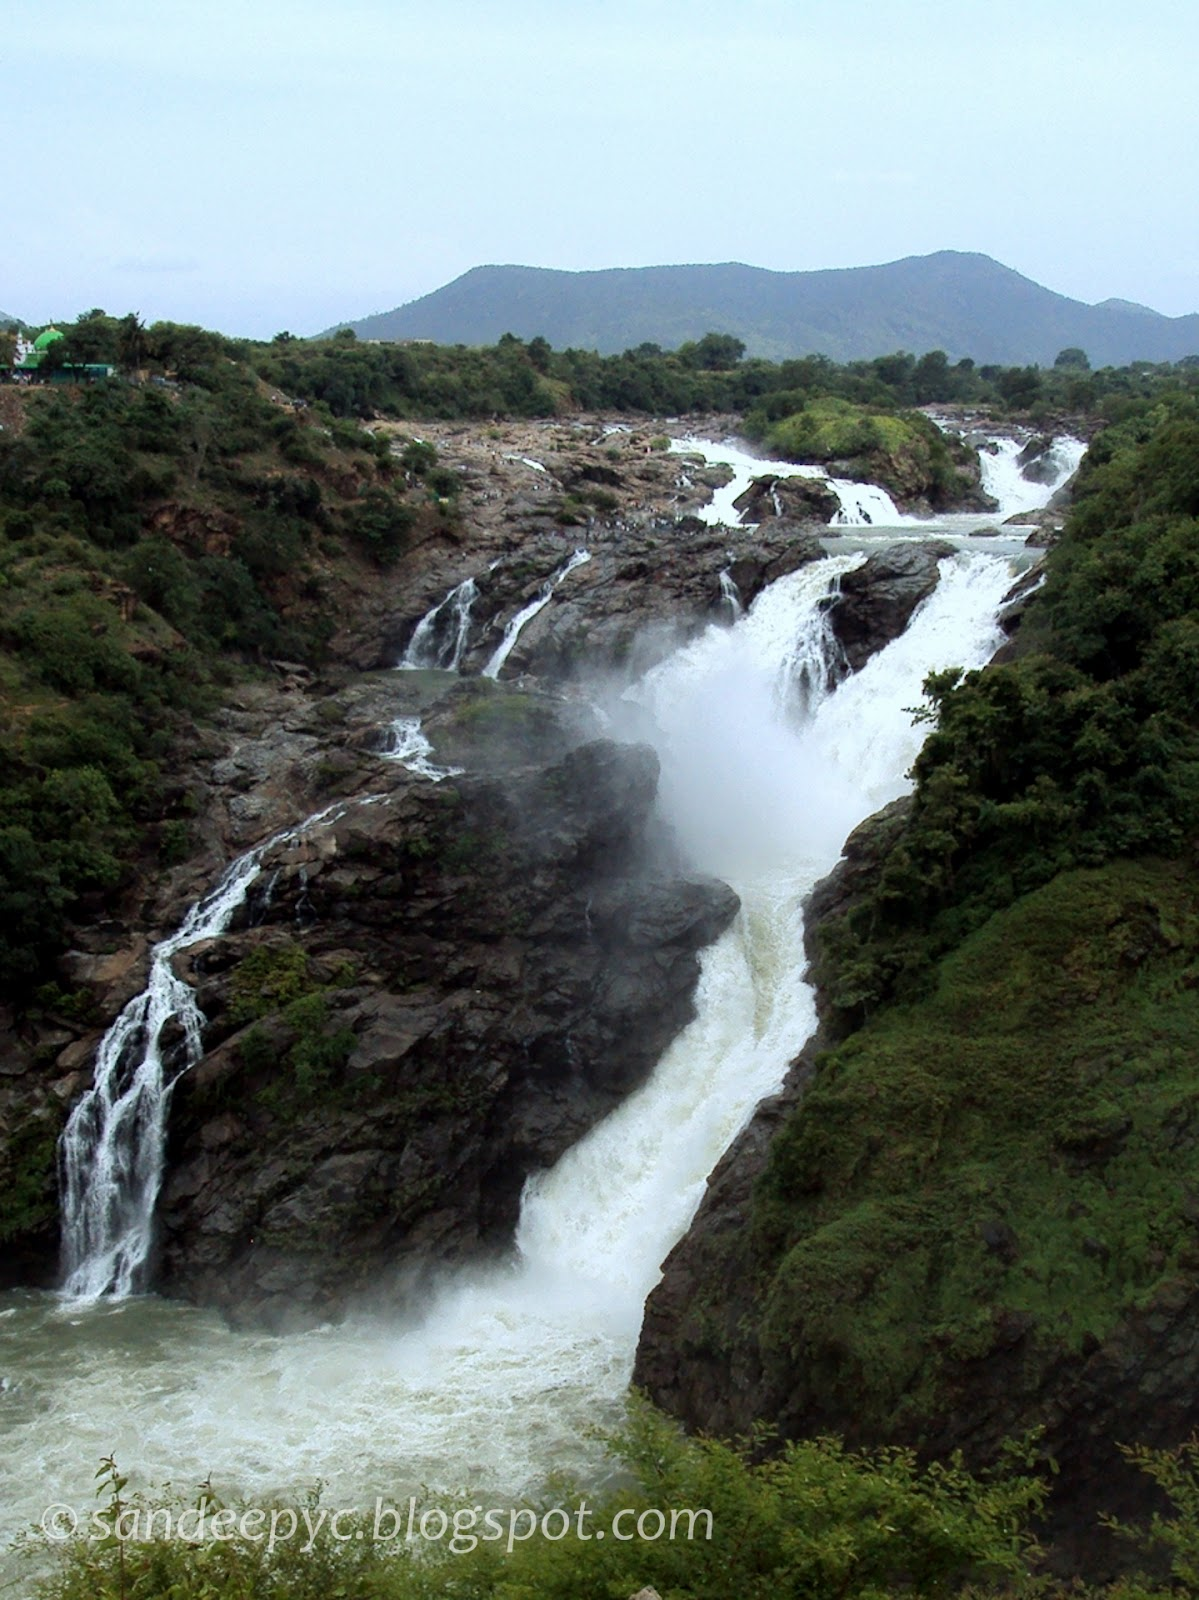 The left section of Gaganachukki falls